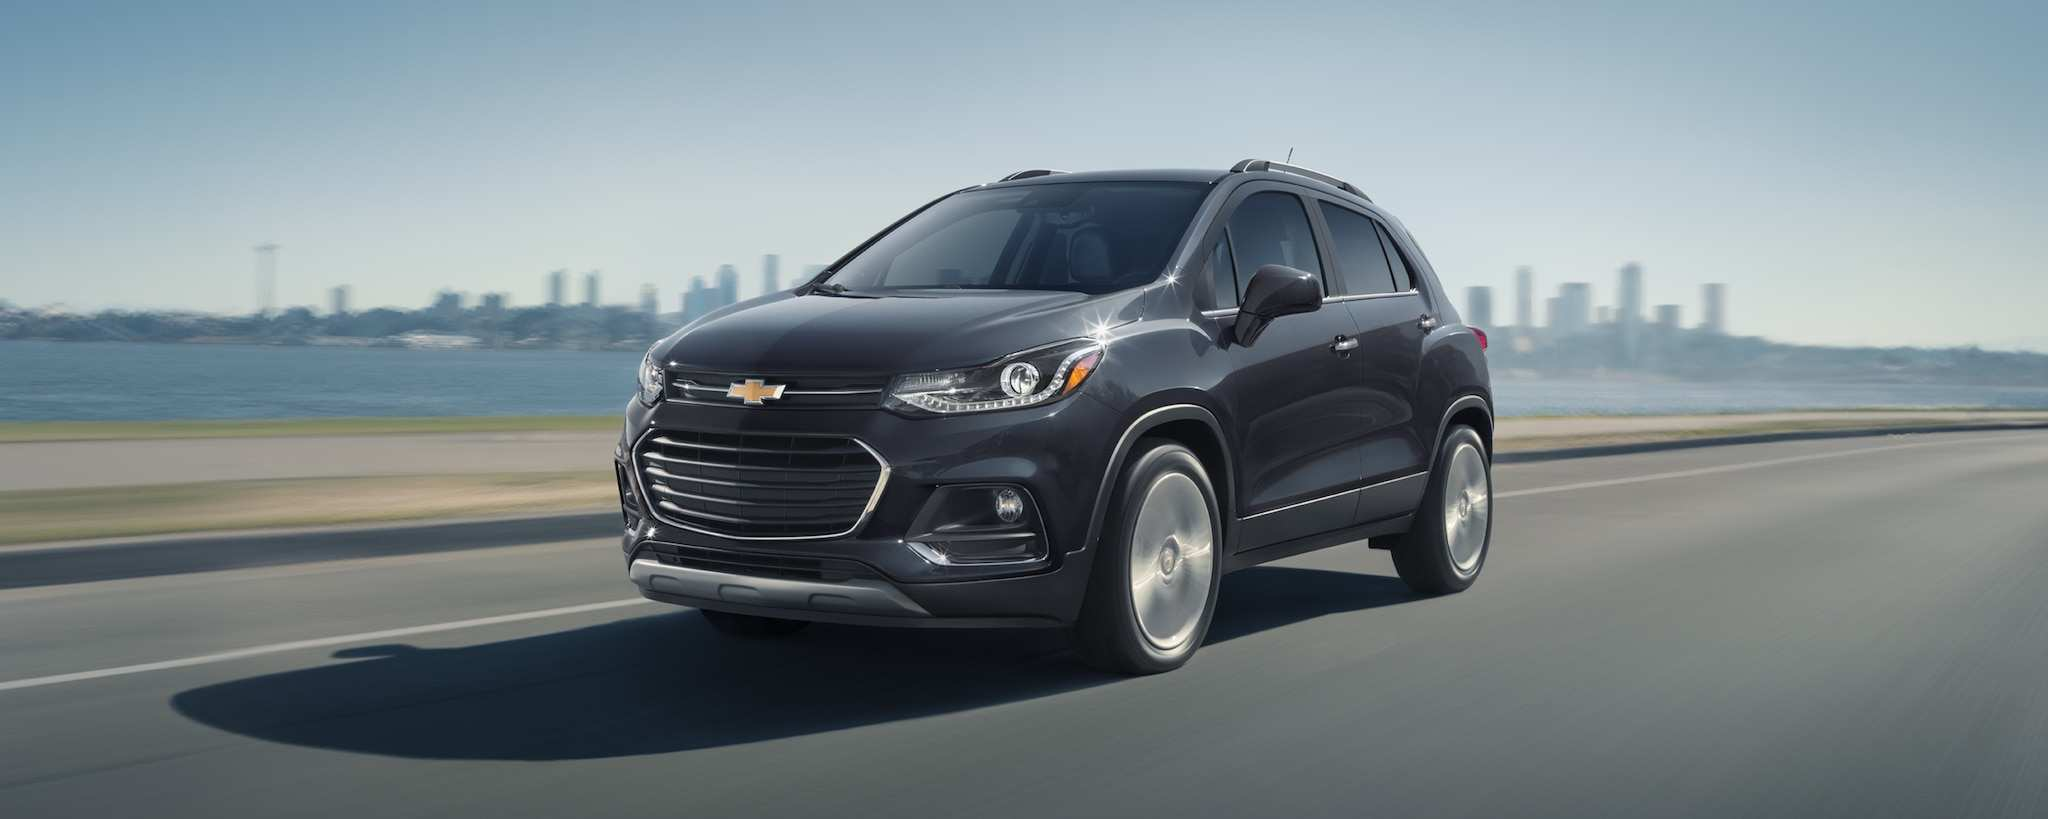 78 New All New Chevrolet Trax 2020 Wallpaper for All New Chevrolet Trax 2020